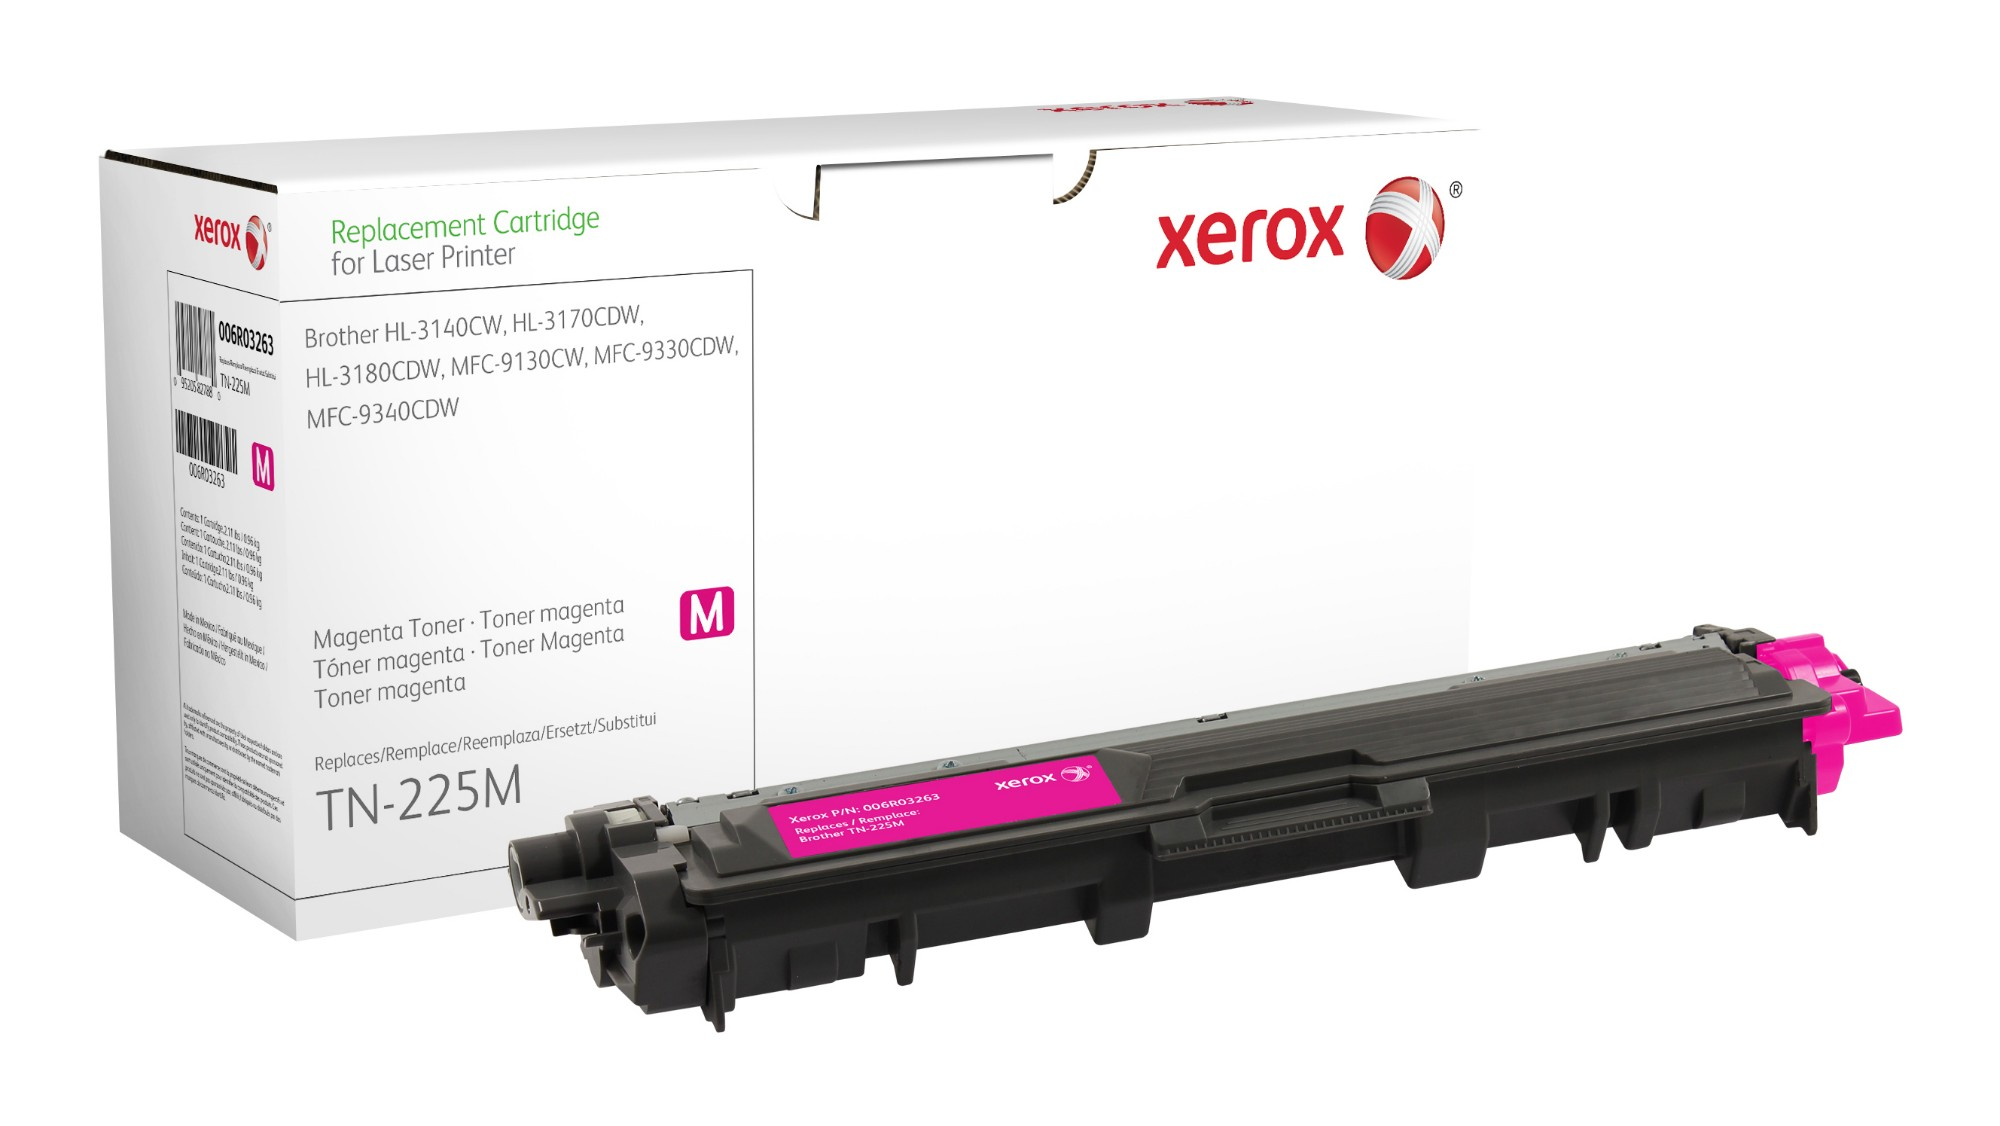 Xerox Cartucho De Tóner Magenta. Equivalente A Brother Tn245M